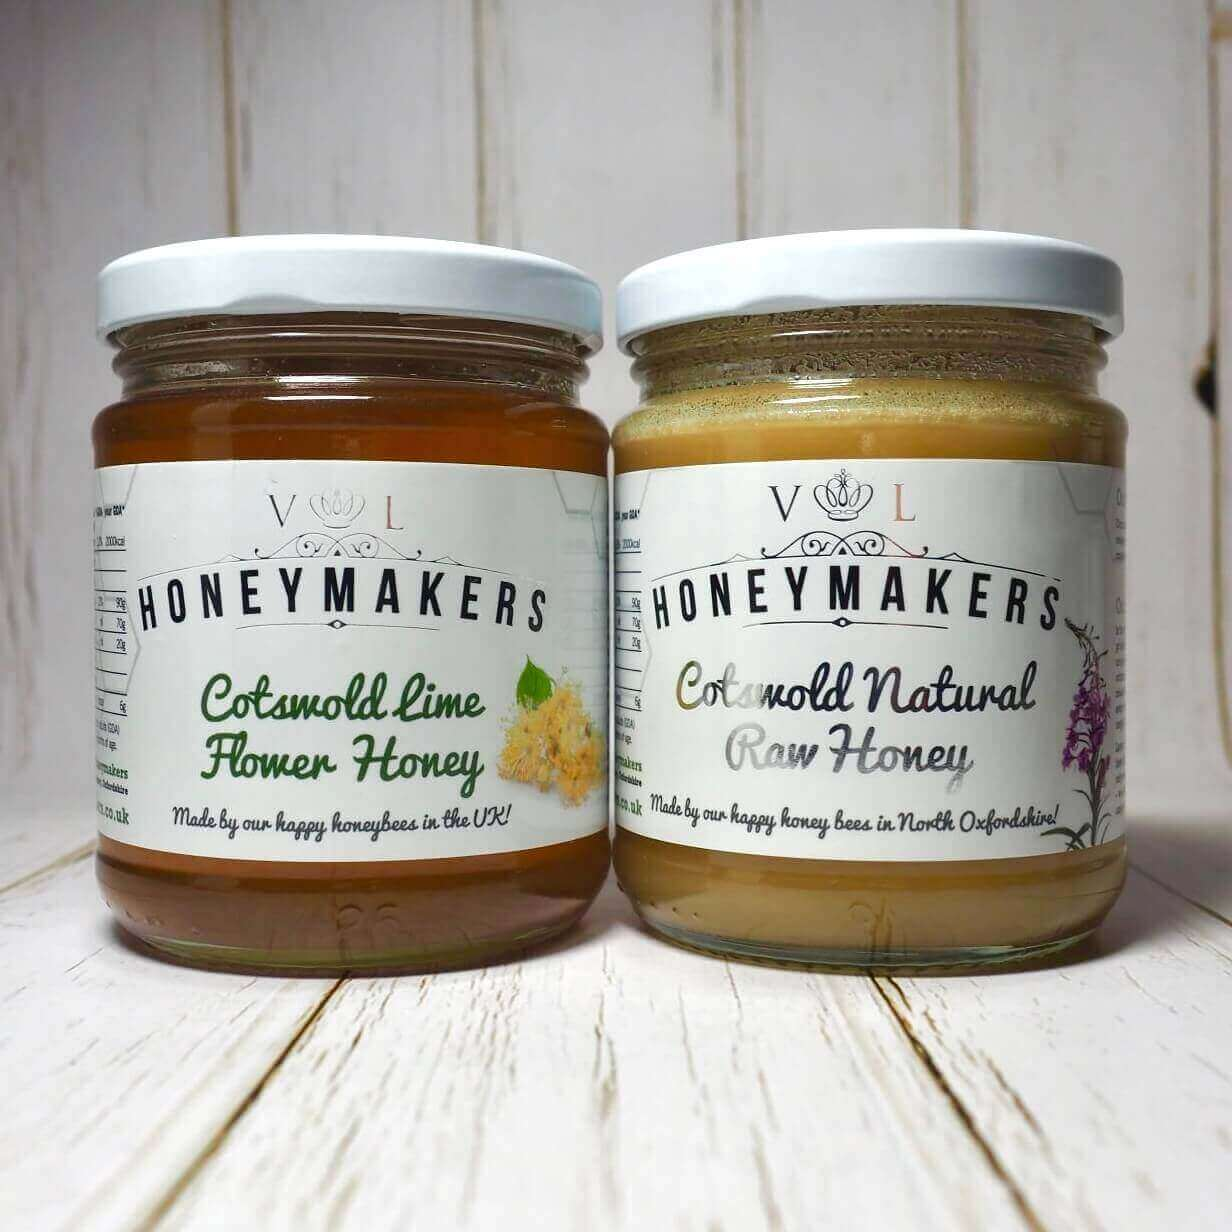 Cotswold lime flower honey and natural raw honey duo. 340g each